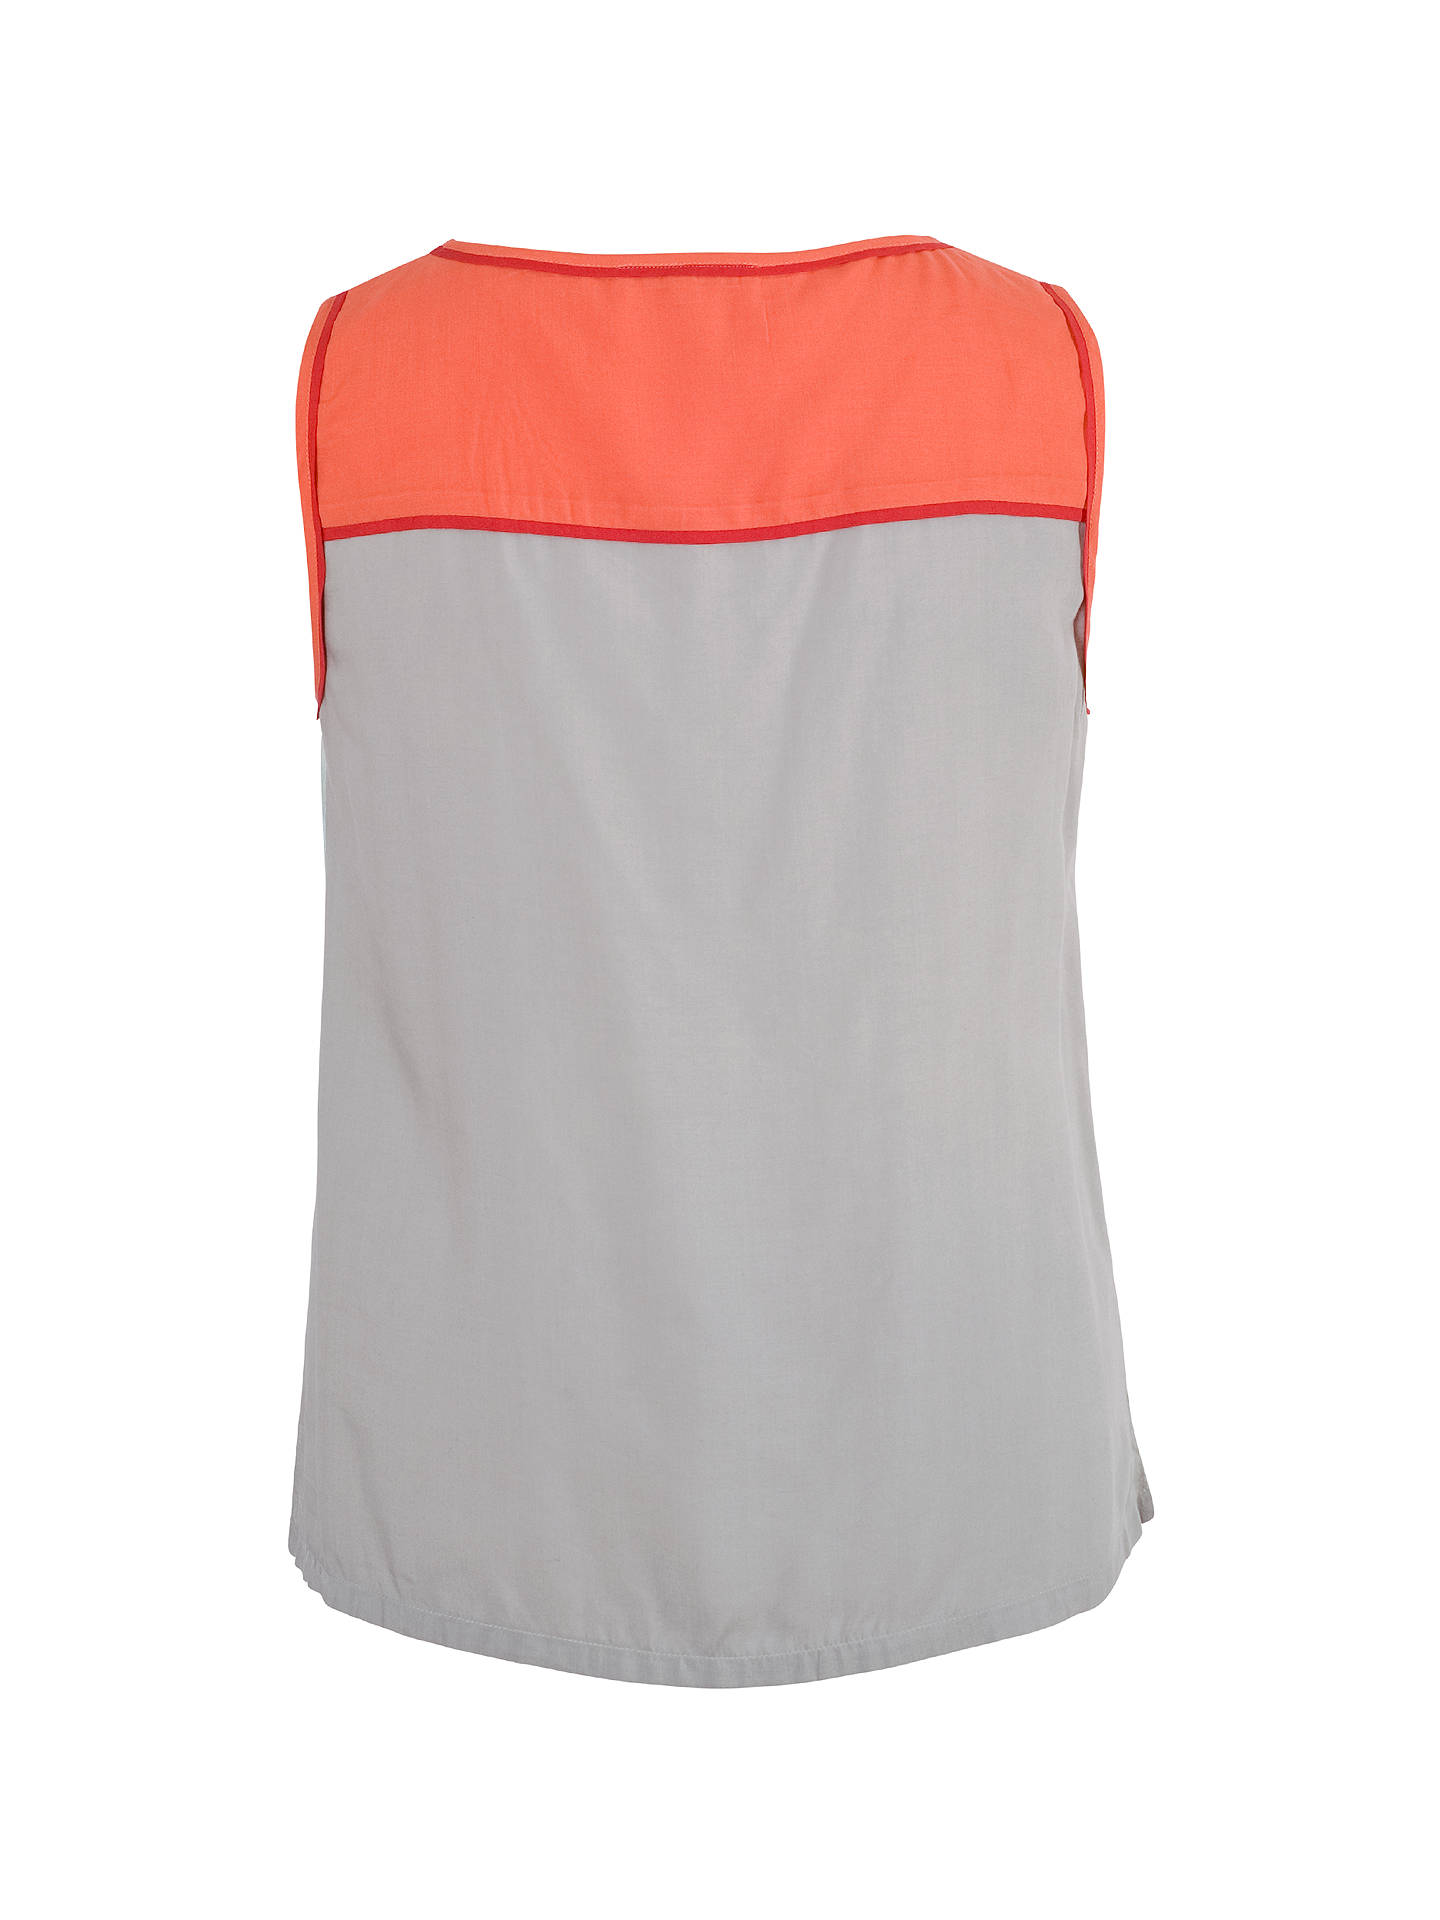 Buy Chesca Contrast Print Top, Sky / Coral, 12-14 Online at johnlewis.com